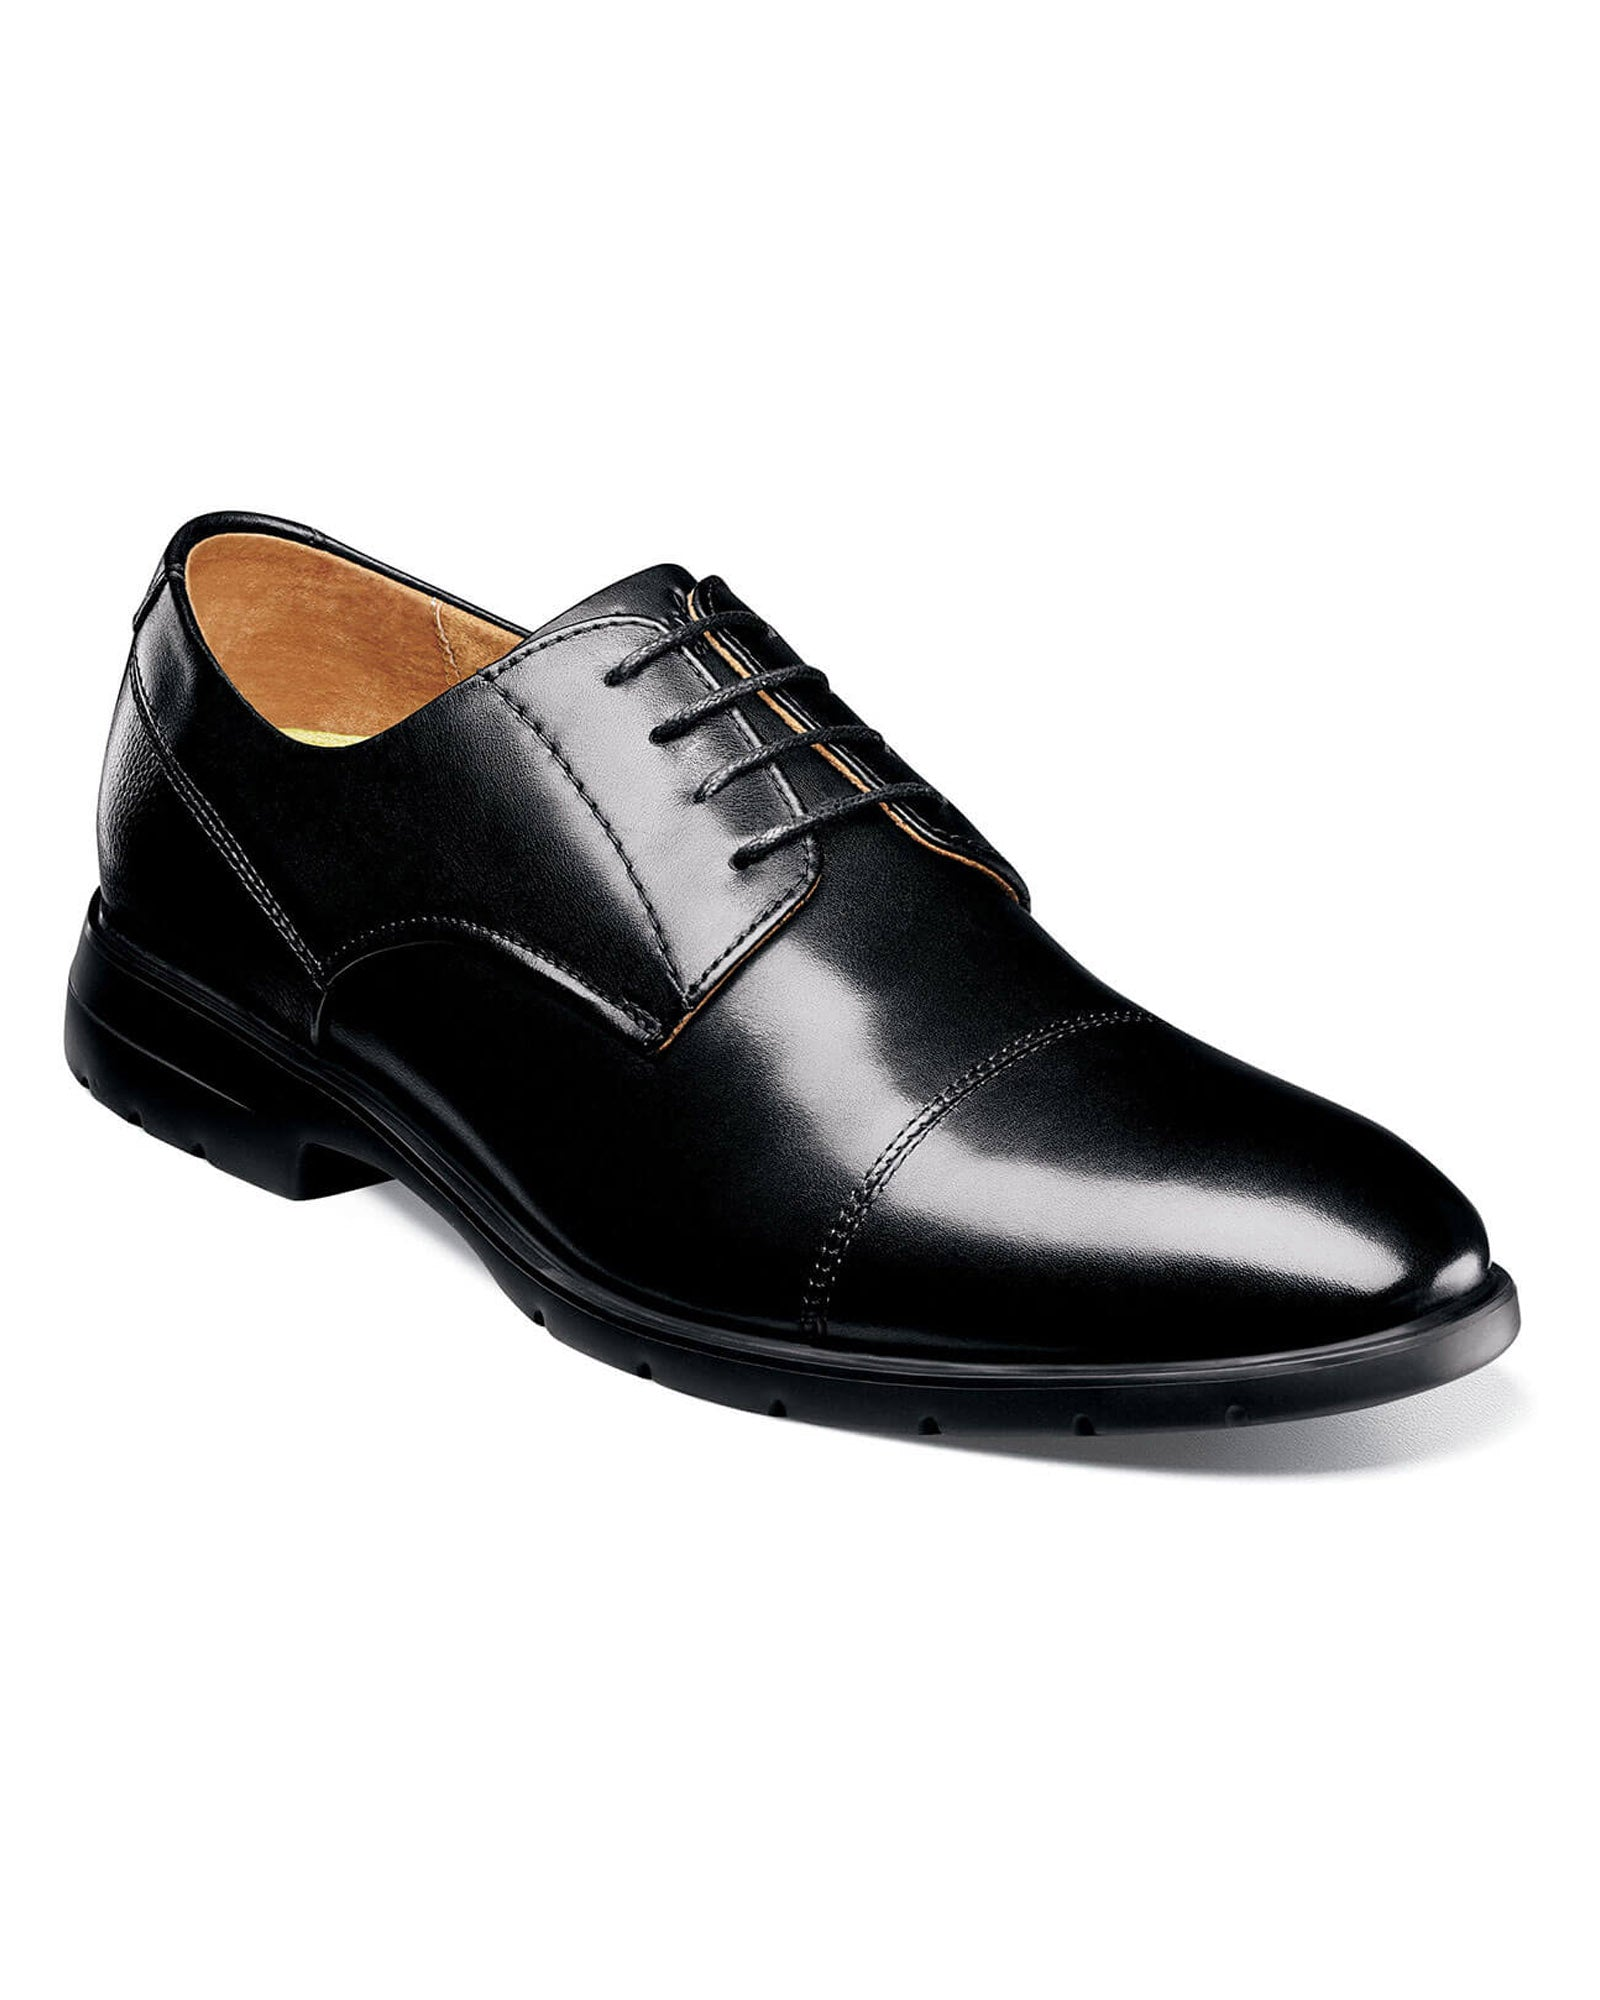 Florsheim Westside Cap Toe Oxford in Black - Rainwater's Men's Clothing and Tuxedo Rental